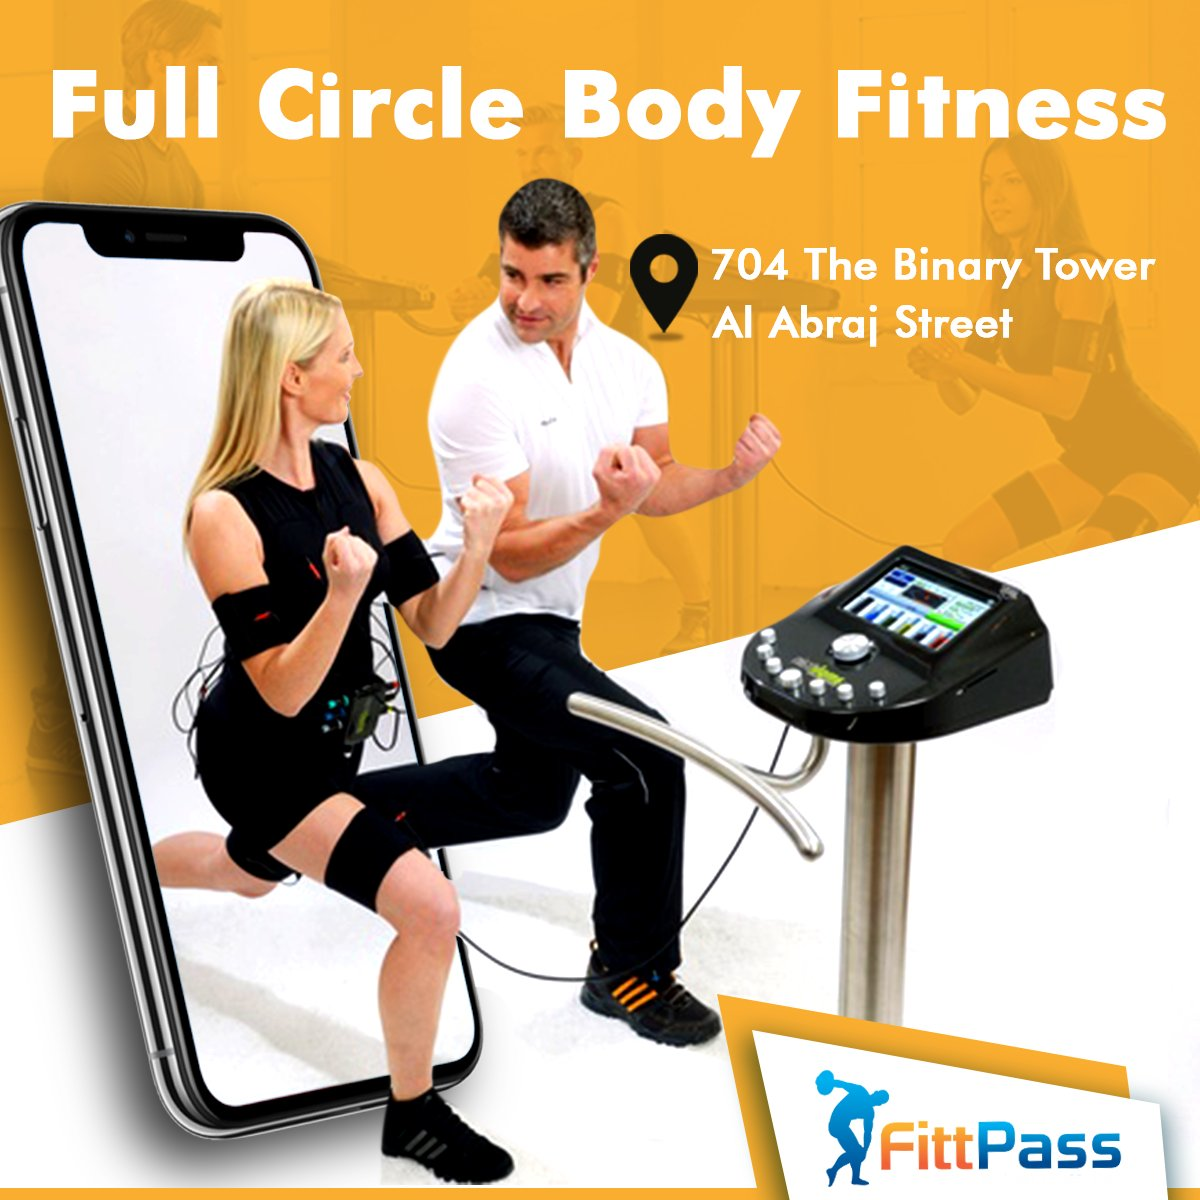 Pressed for time but still want to get a workout in? Check out @fullcirclebody_ and train for only 20 minutes 2-3 a week! Buy your pass today and save up to 70% exclusively on http://FittPass.com  => https://bit.ly/2HOiksc   #EMSTraining #EMSDubai #DubaiEMS #FittPass